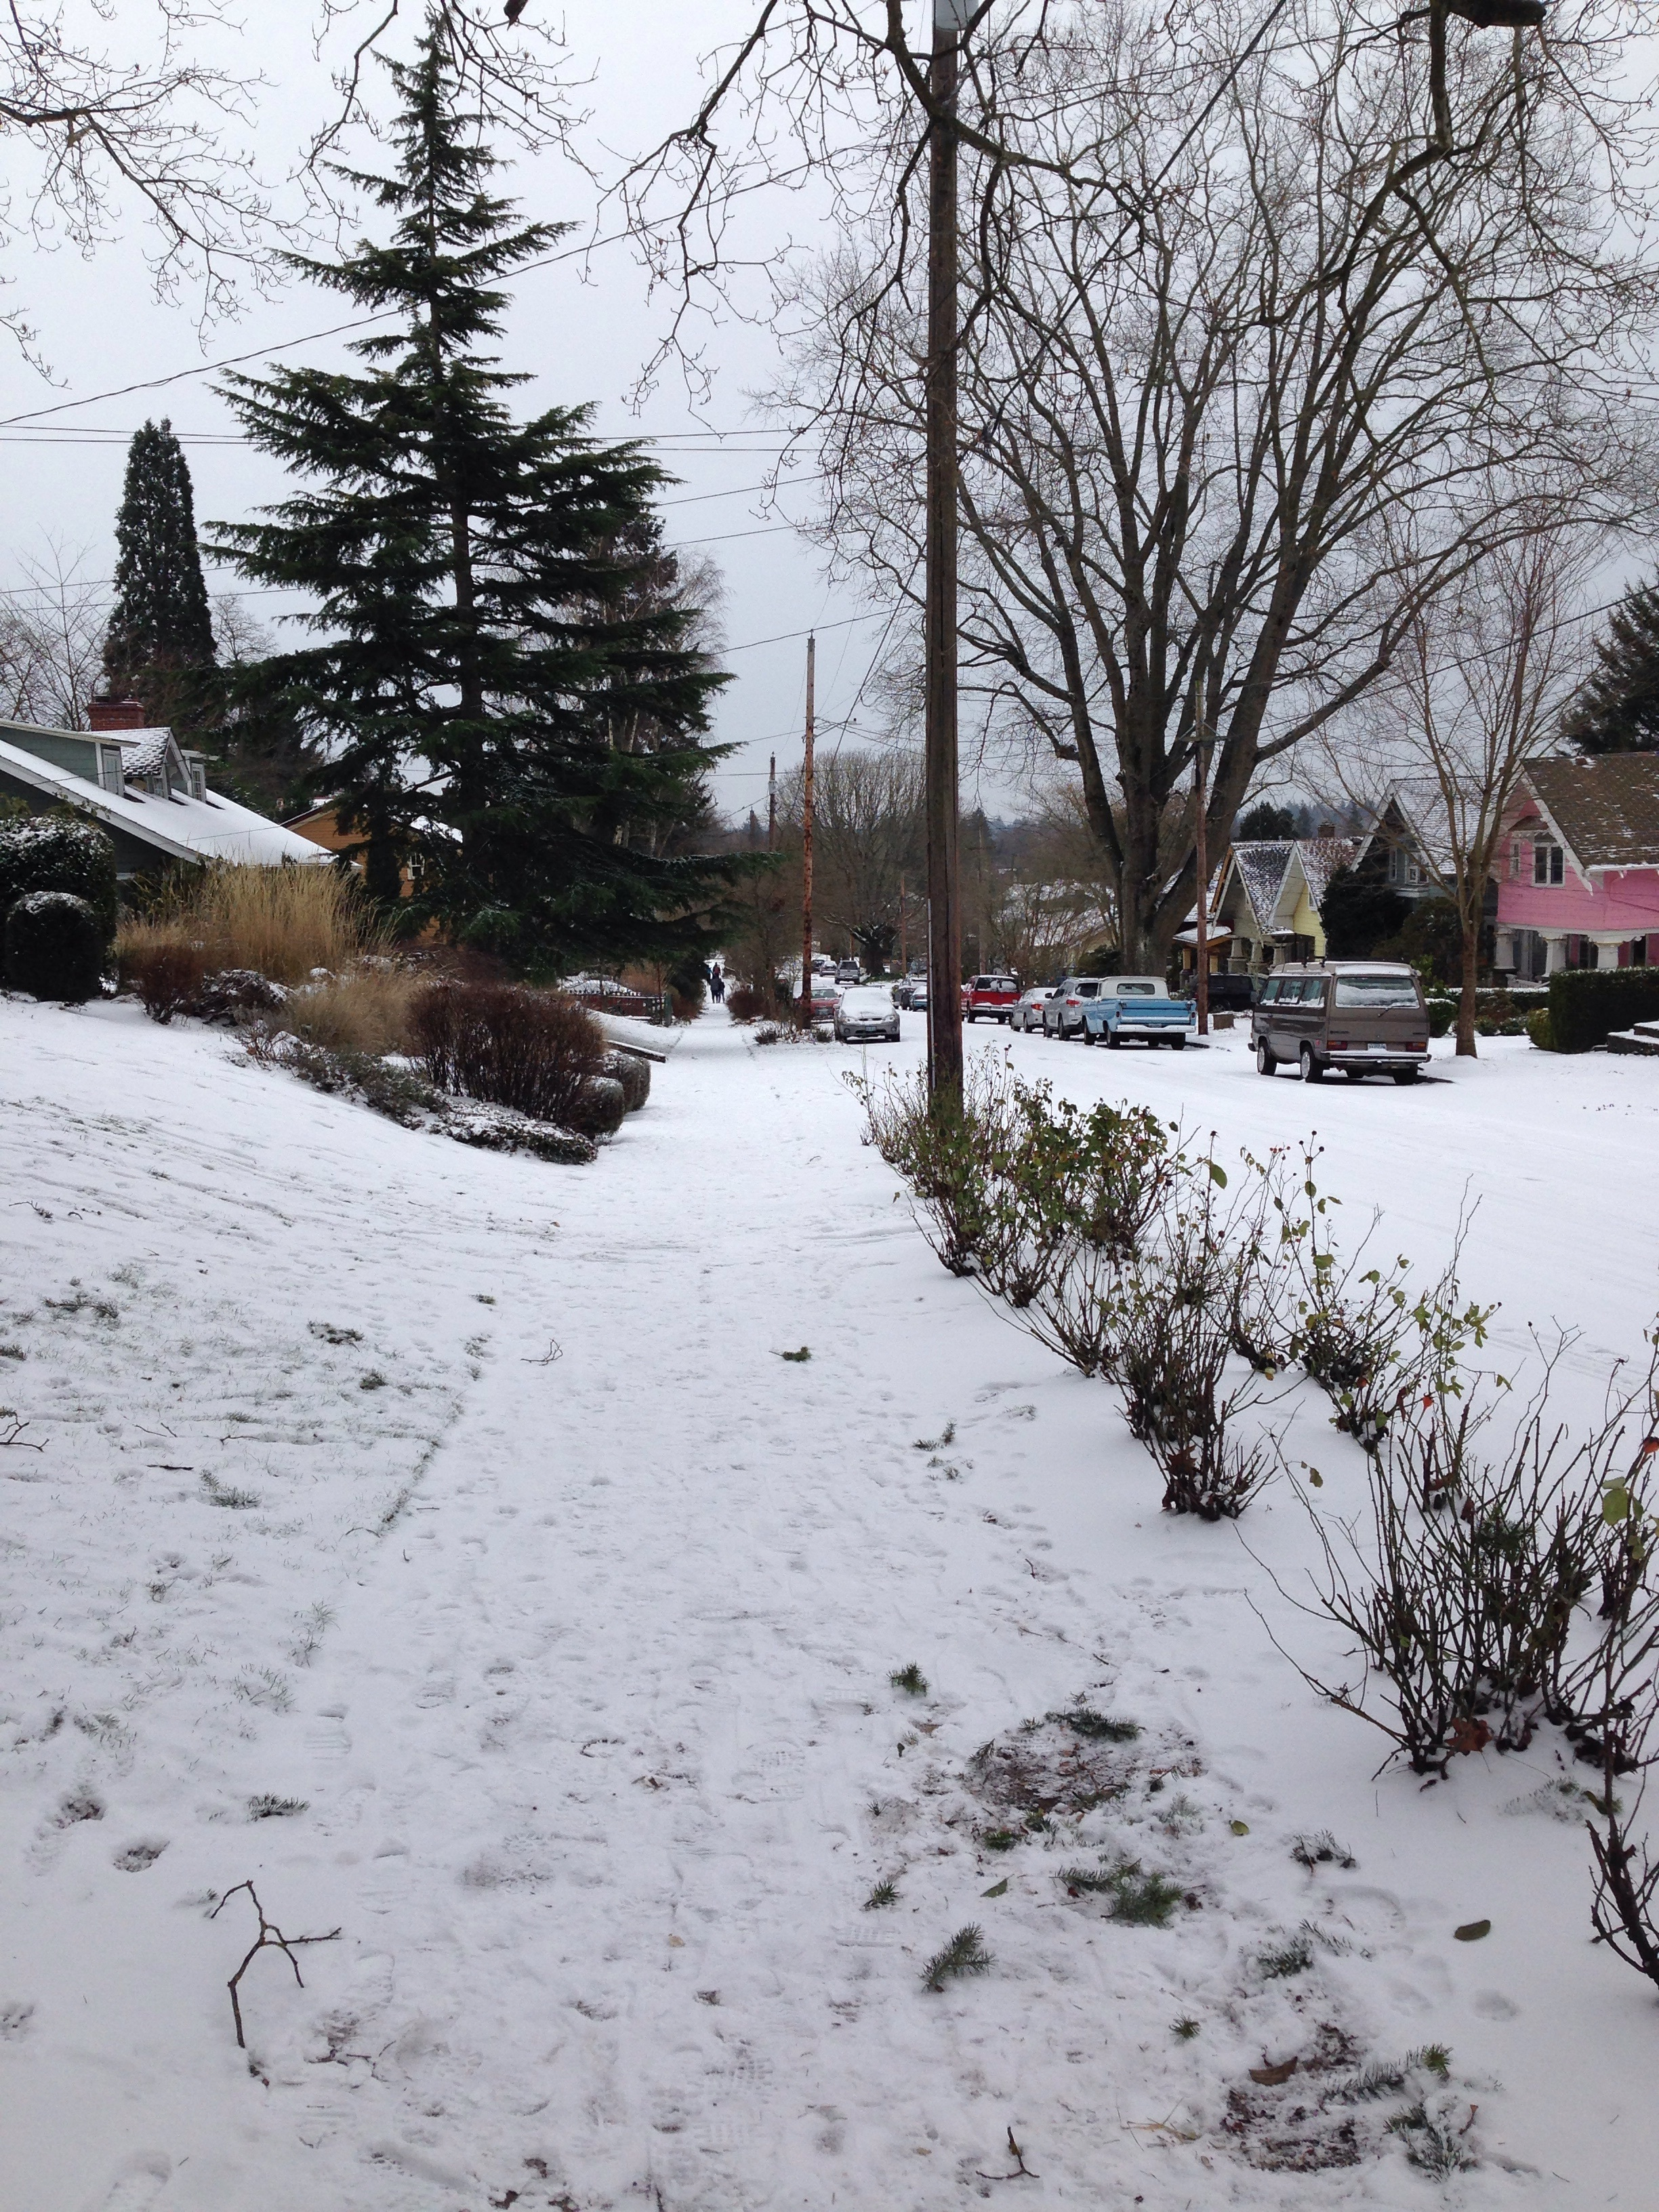 The streets of our home office in Portland, Oregon January 4th, 2016